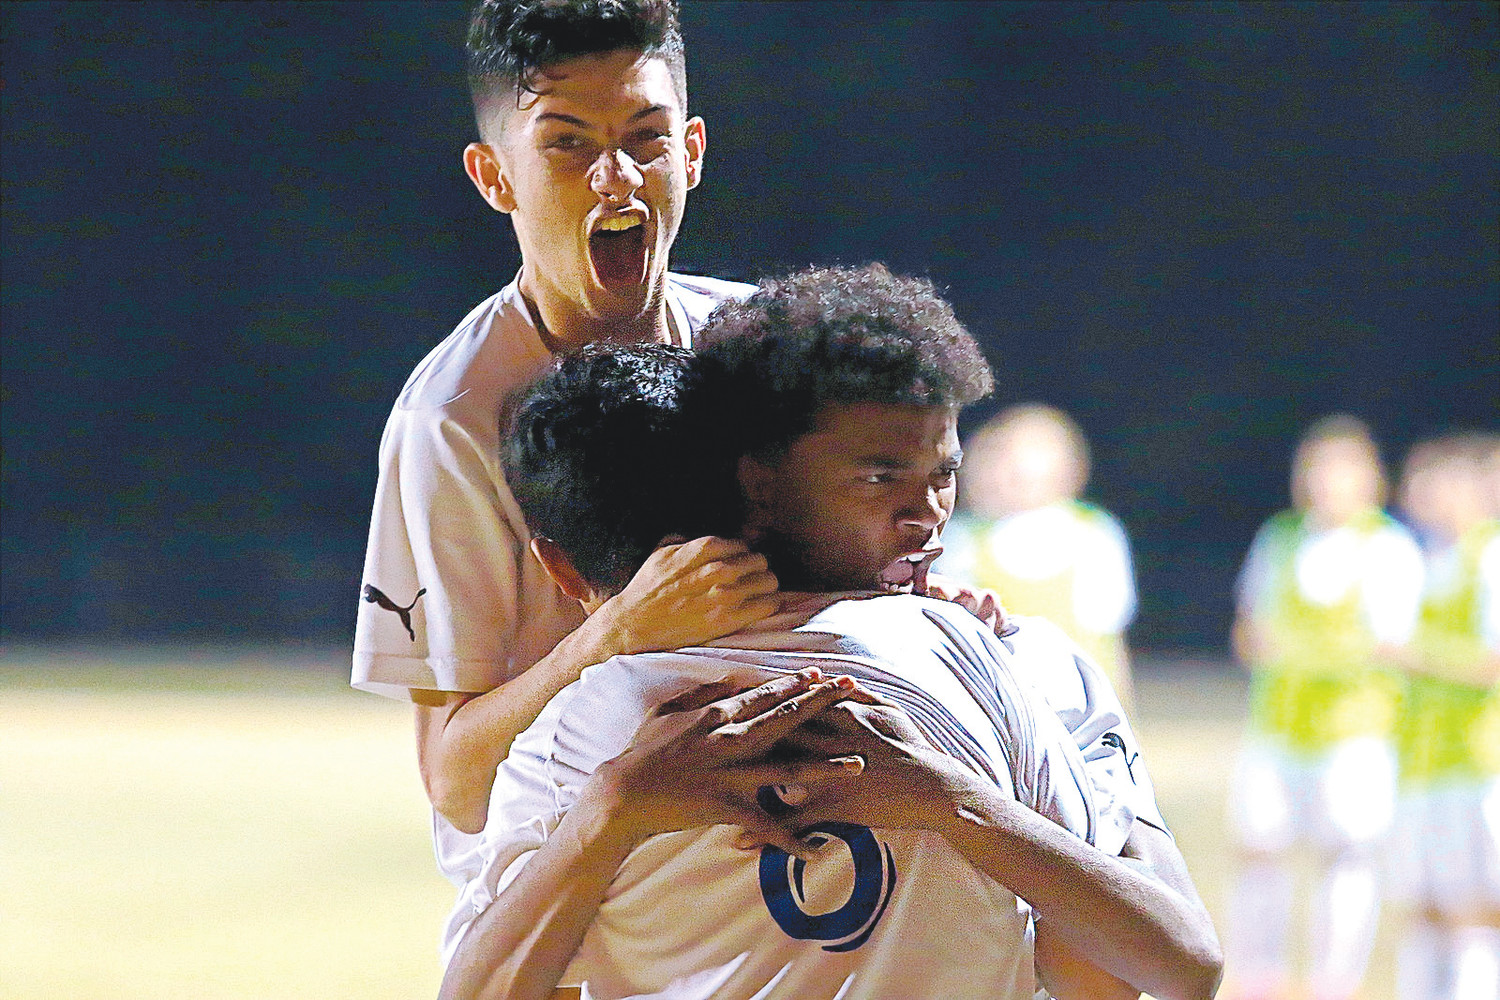 Ridgeview High boys soccer players Jose Ortiz, left, and Elias Martin, right, hug teammate Miguel Ortiz after his game winning goal in first minute of second half in Panthers' 1-0 win in their region 1-3A semifinal against Matanzas on Feb. 10.